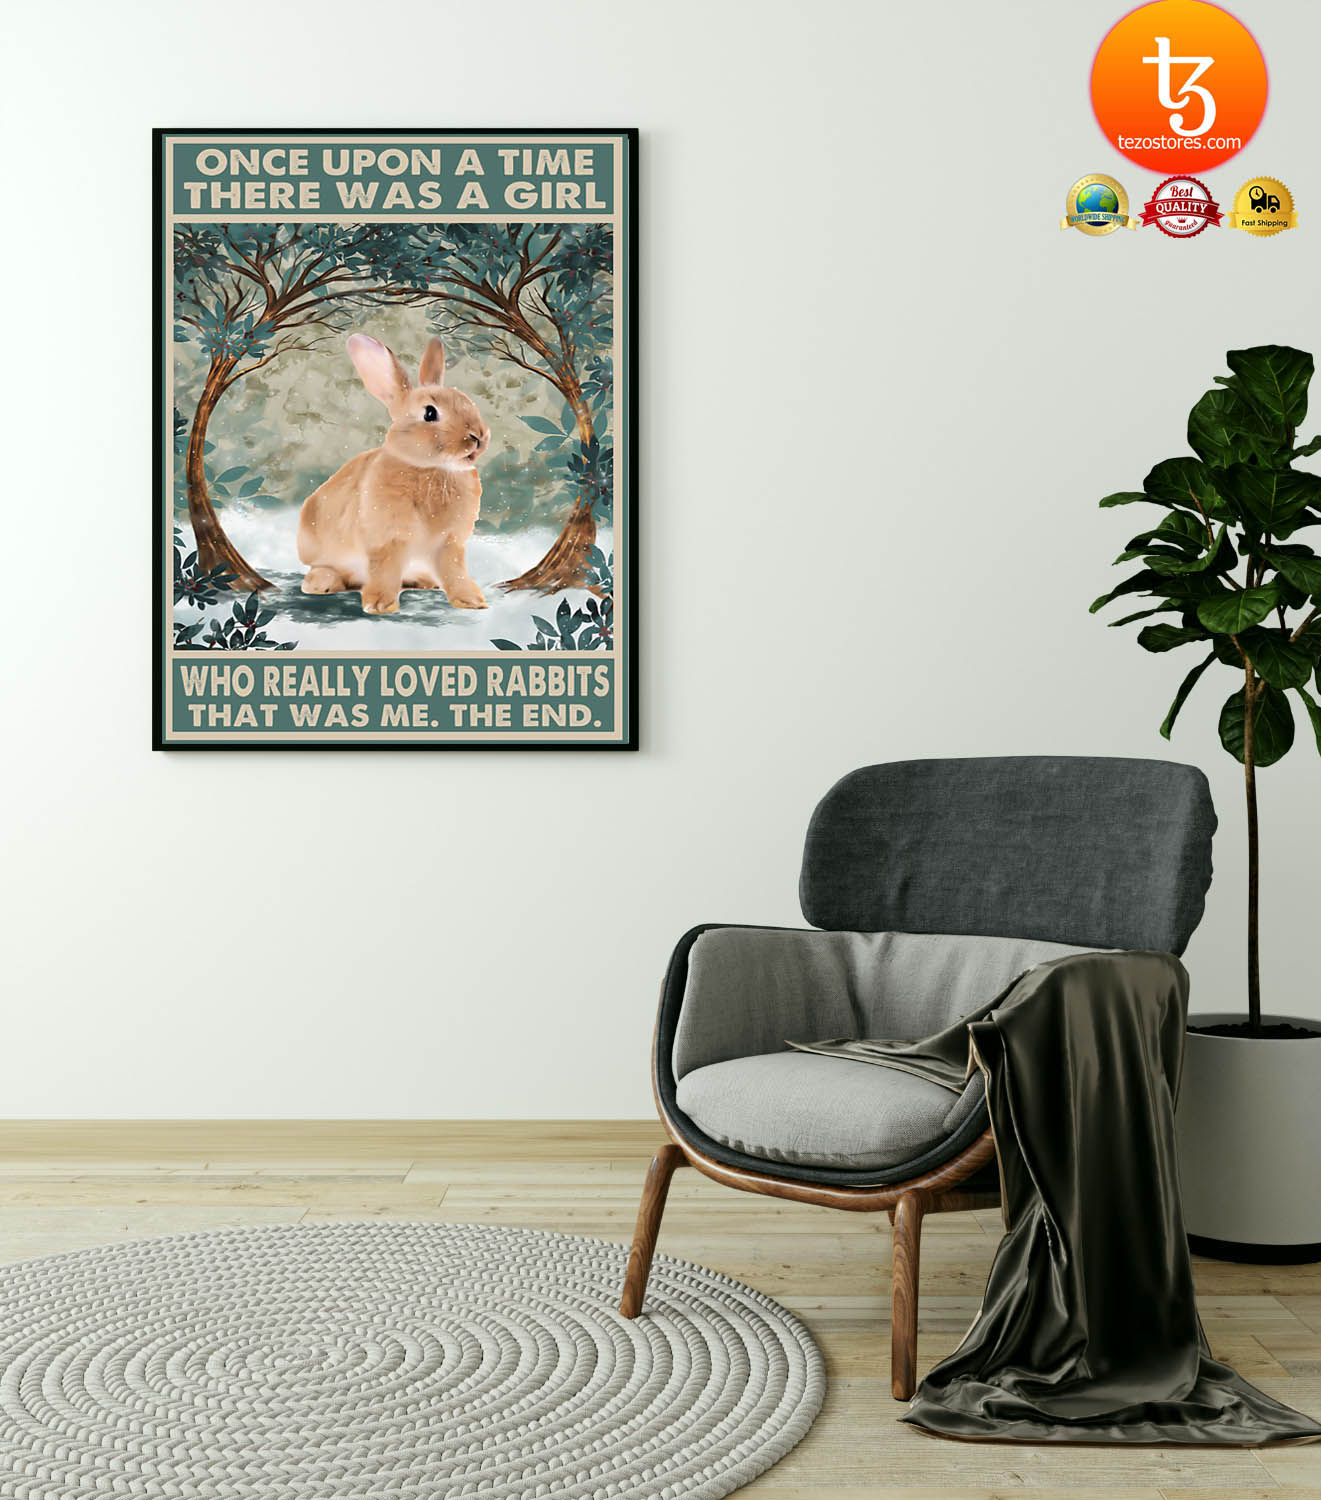 Once upon a time there was a girl who really loved rabbits poster 19